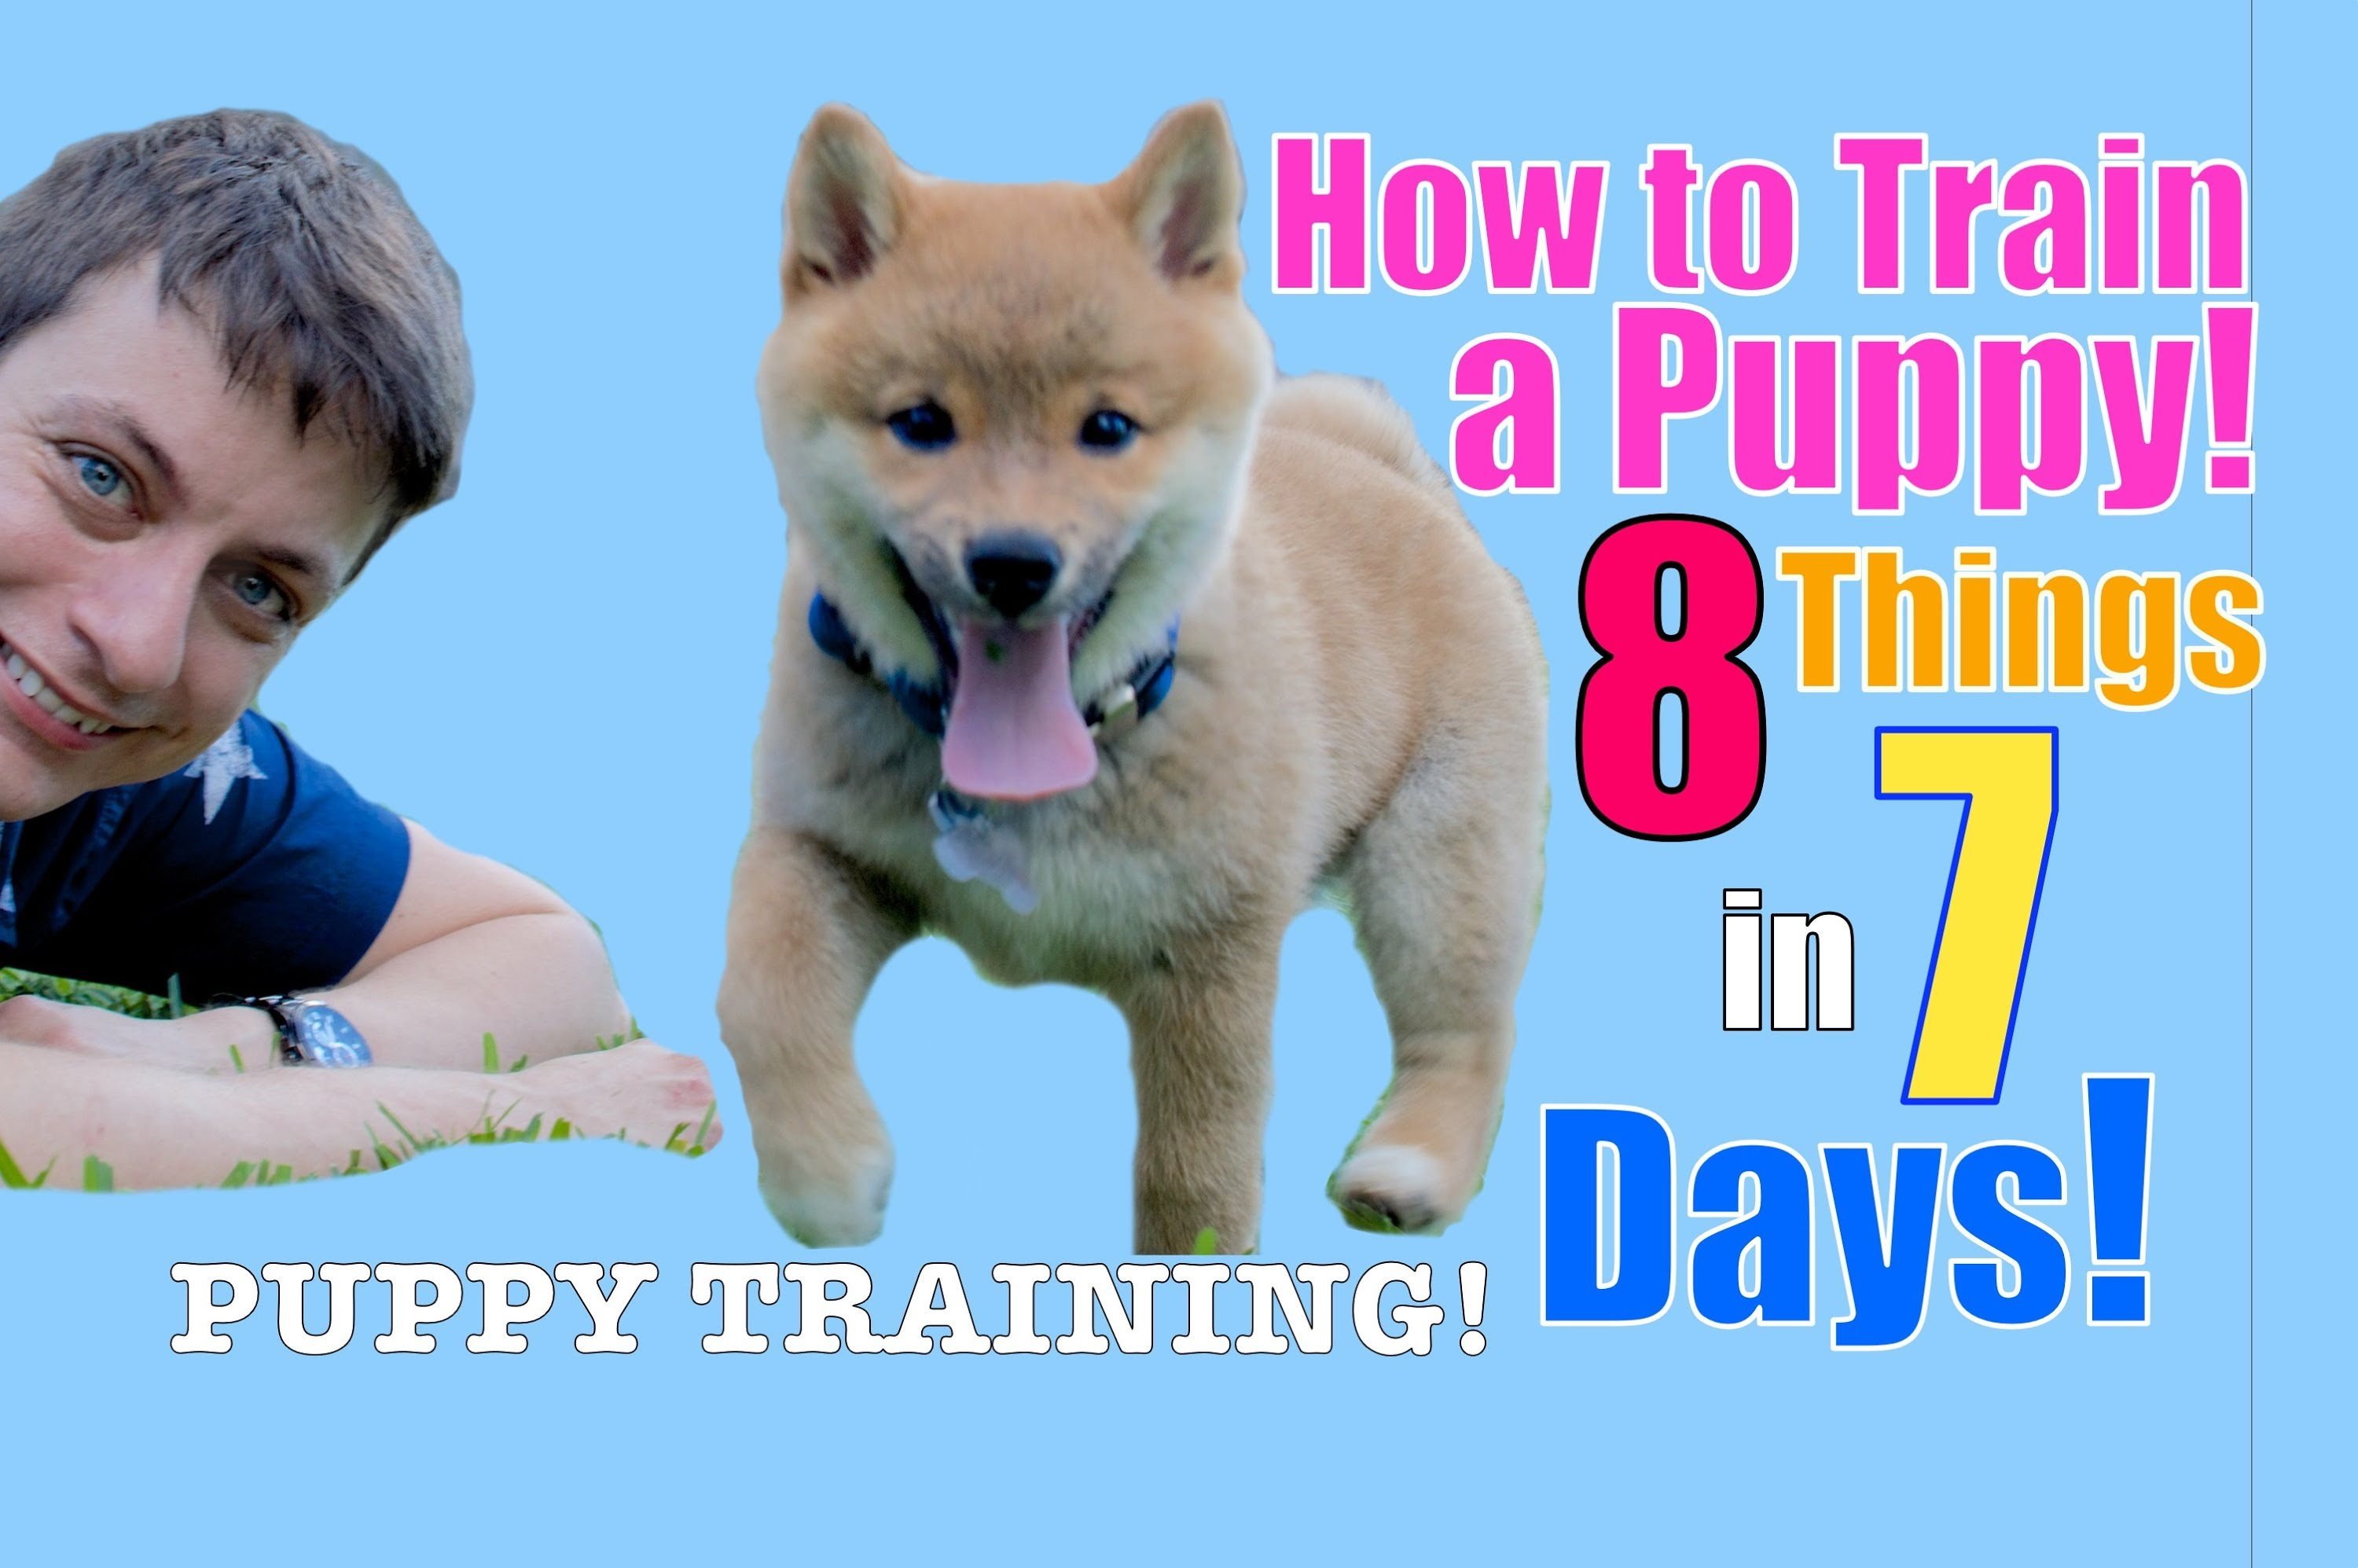 Shiba Inu Puppy Training (STOP Puppy Biting, Come, Stay